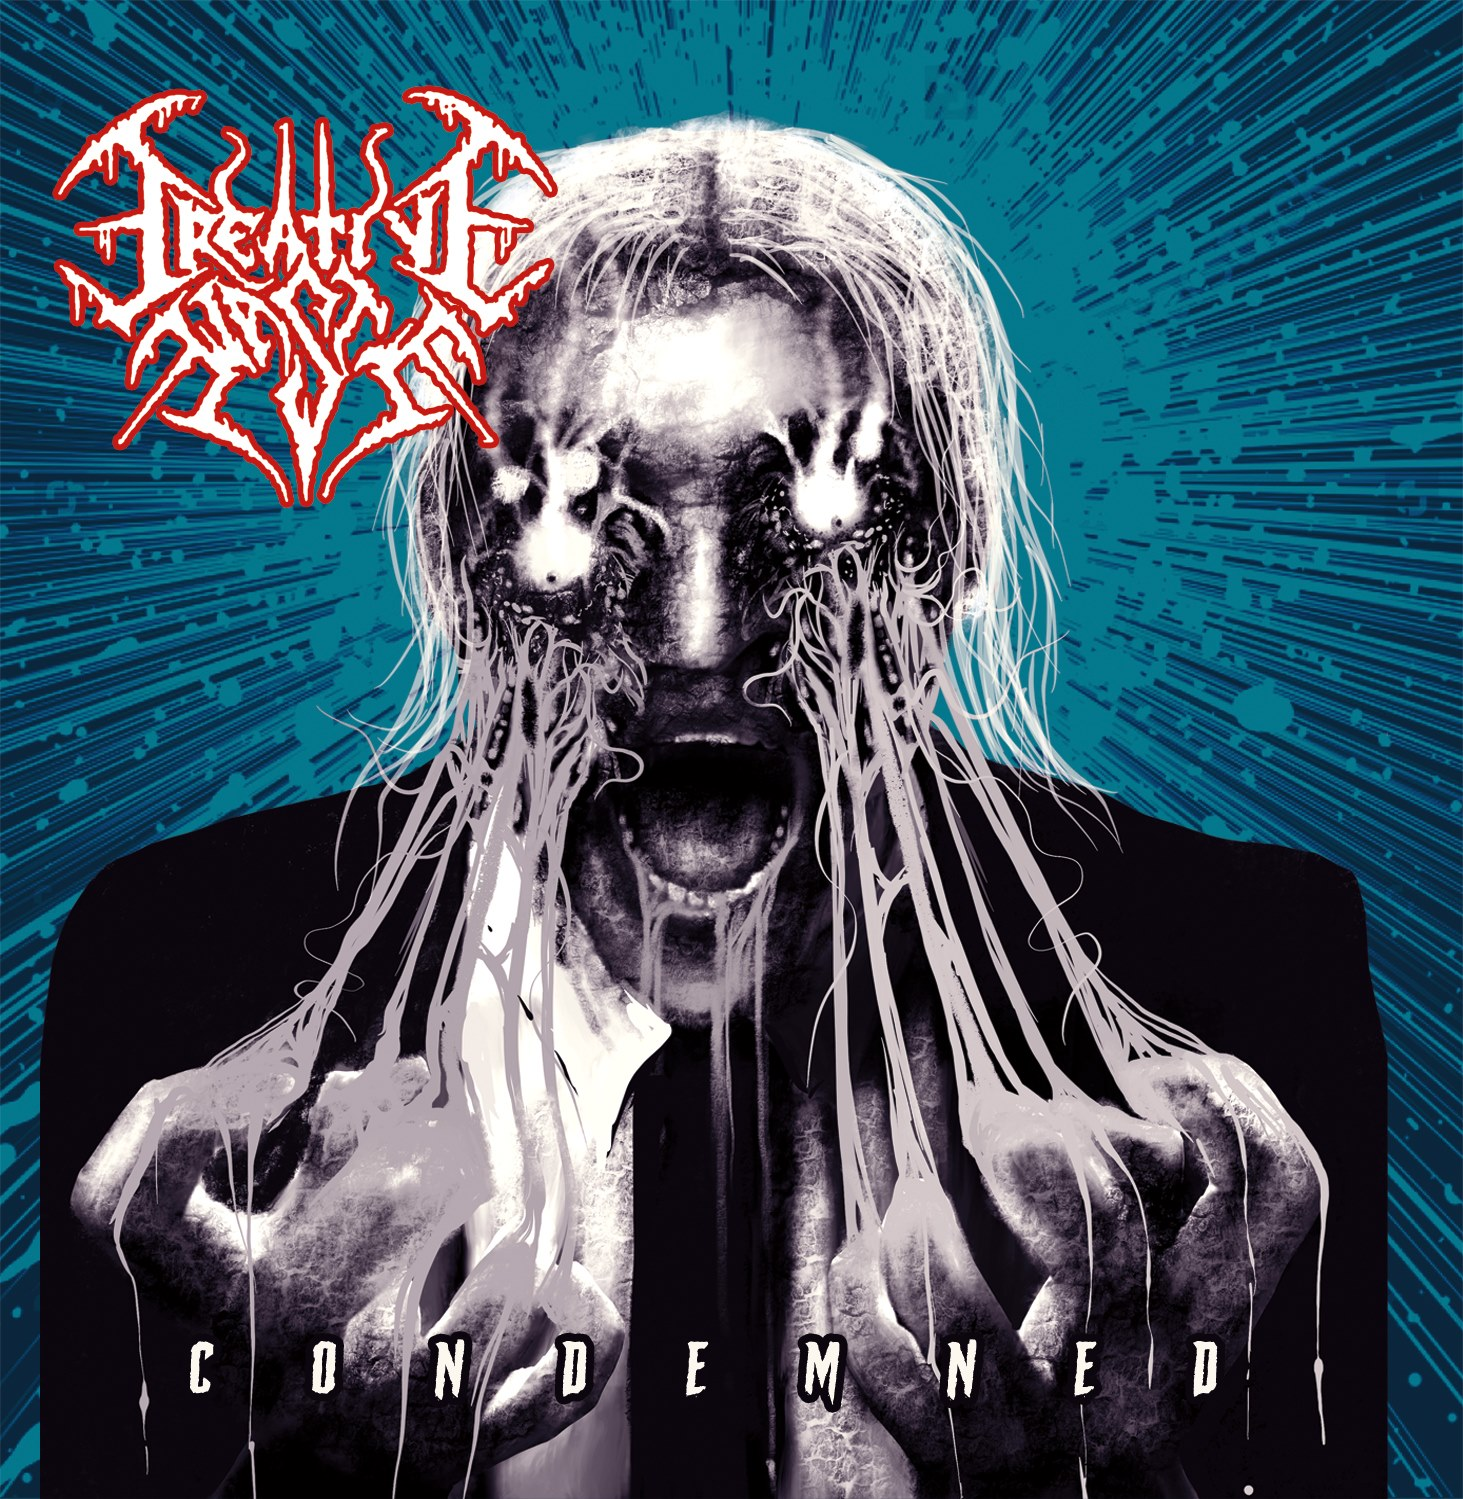 creative waste condemned cover art